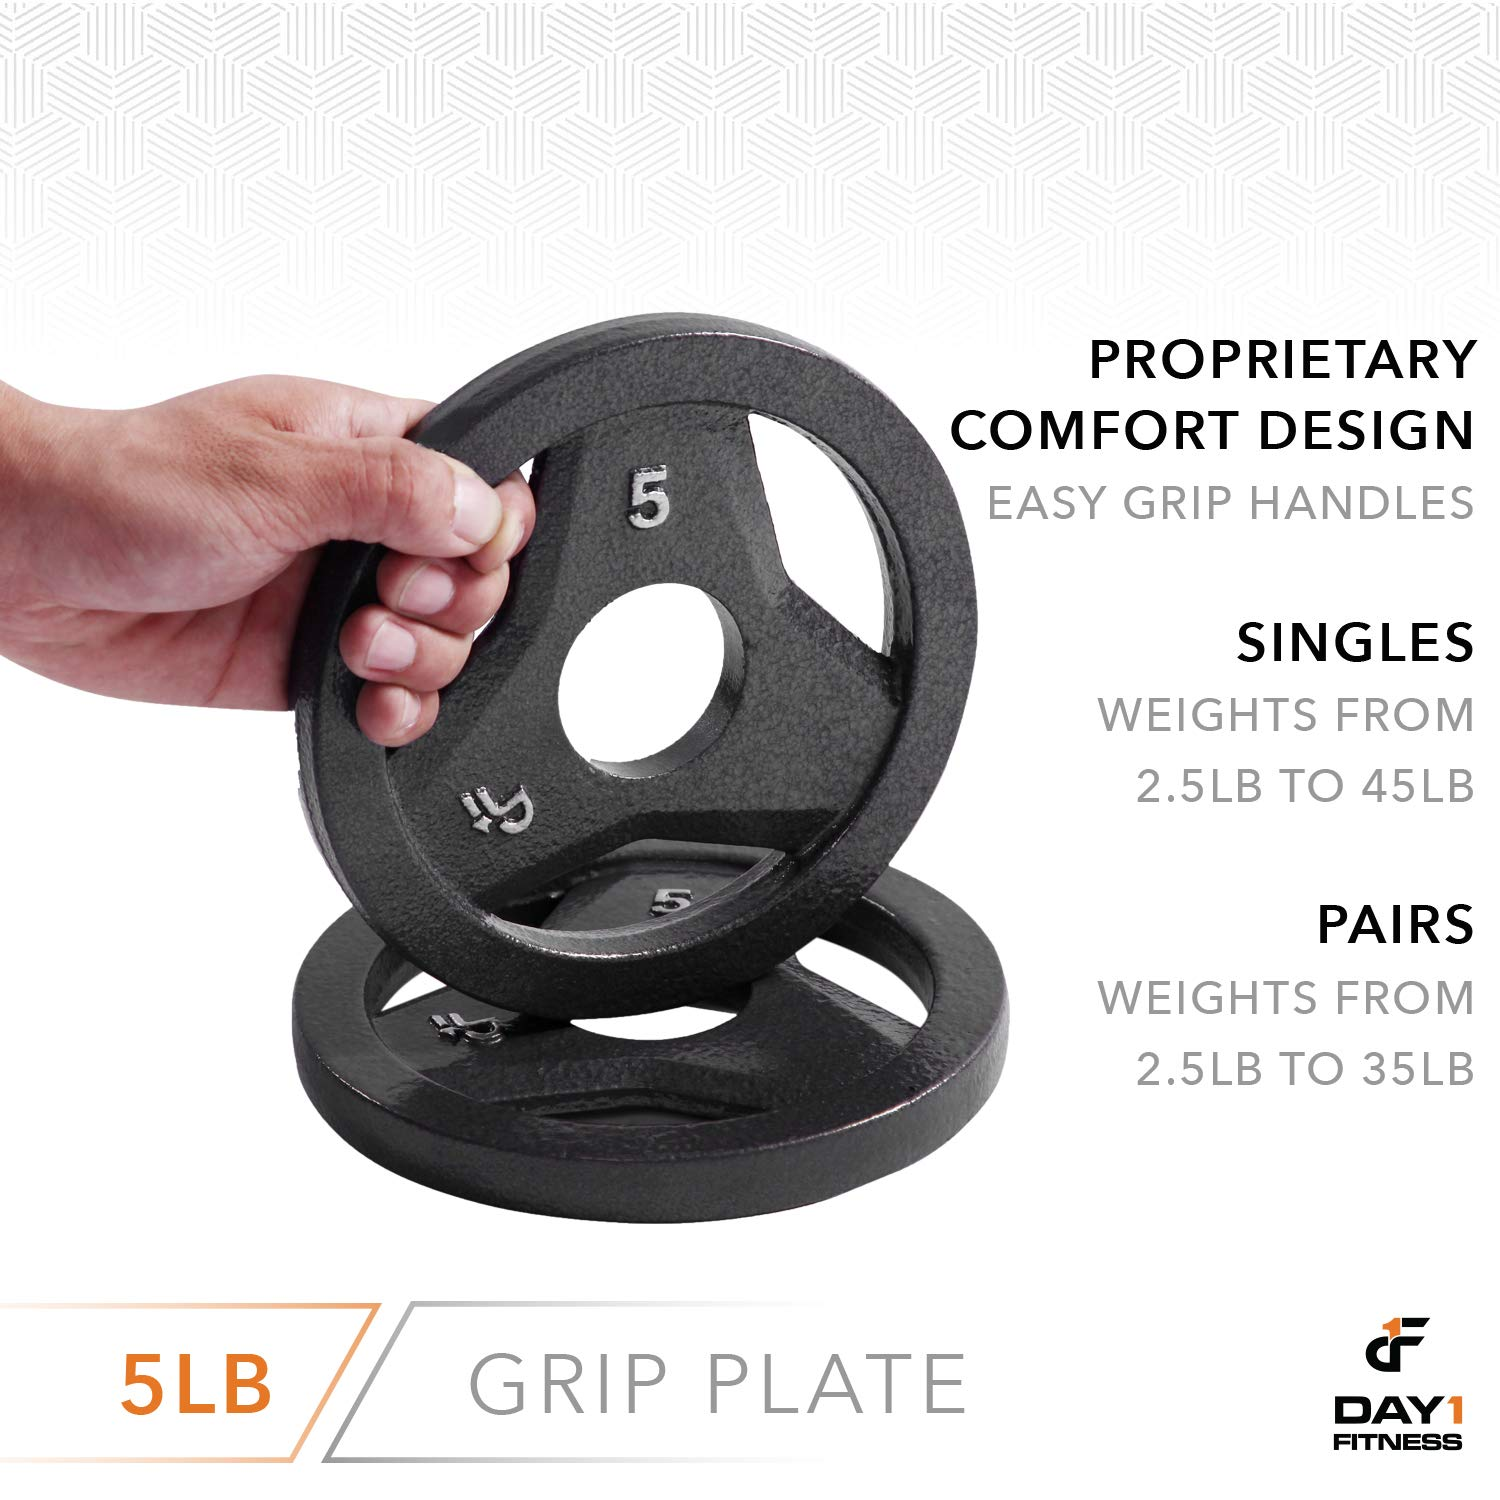 """Day 1 Fitness Cast Iron Olympic 2-Inch Grip Plate for Barbell, 5 Pound Single Plate Iron Grip Plates for Weightlifting, Crossfit - 2"""" Weight Plate for Bodybuilding by Day 1 Fitness (Image #5)"""